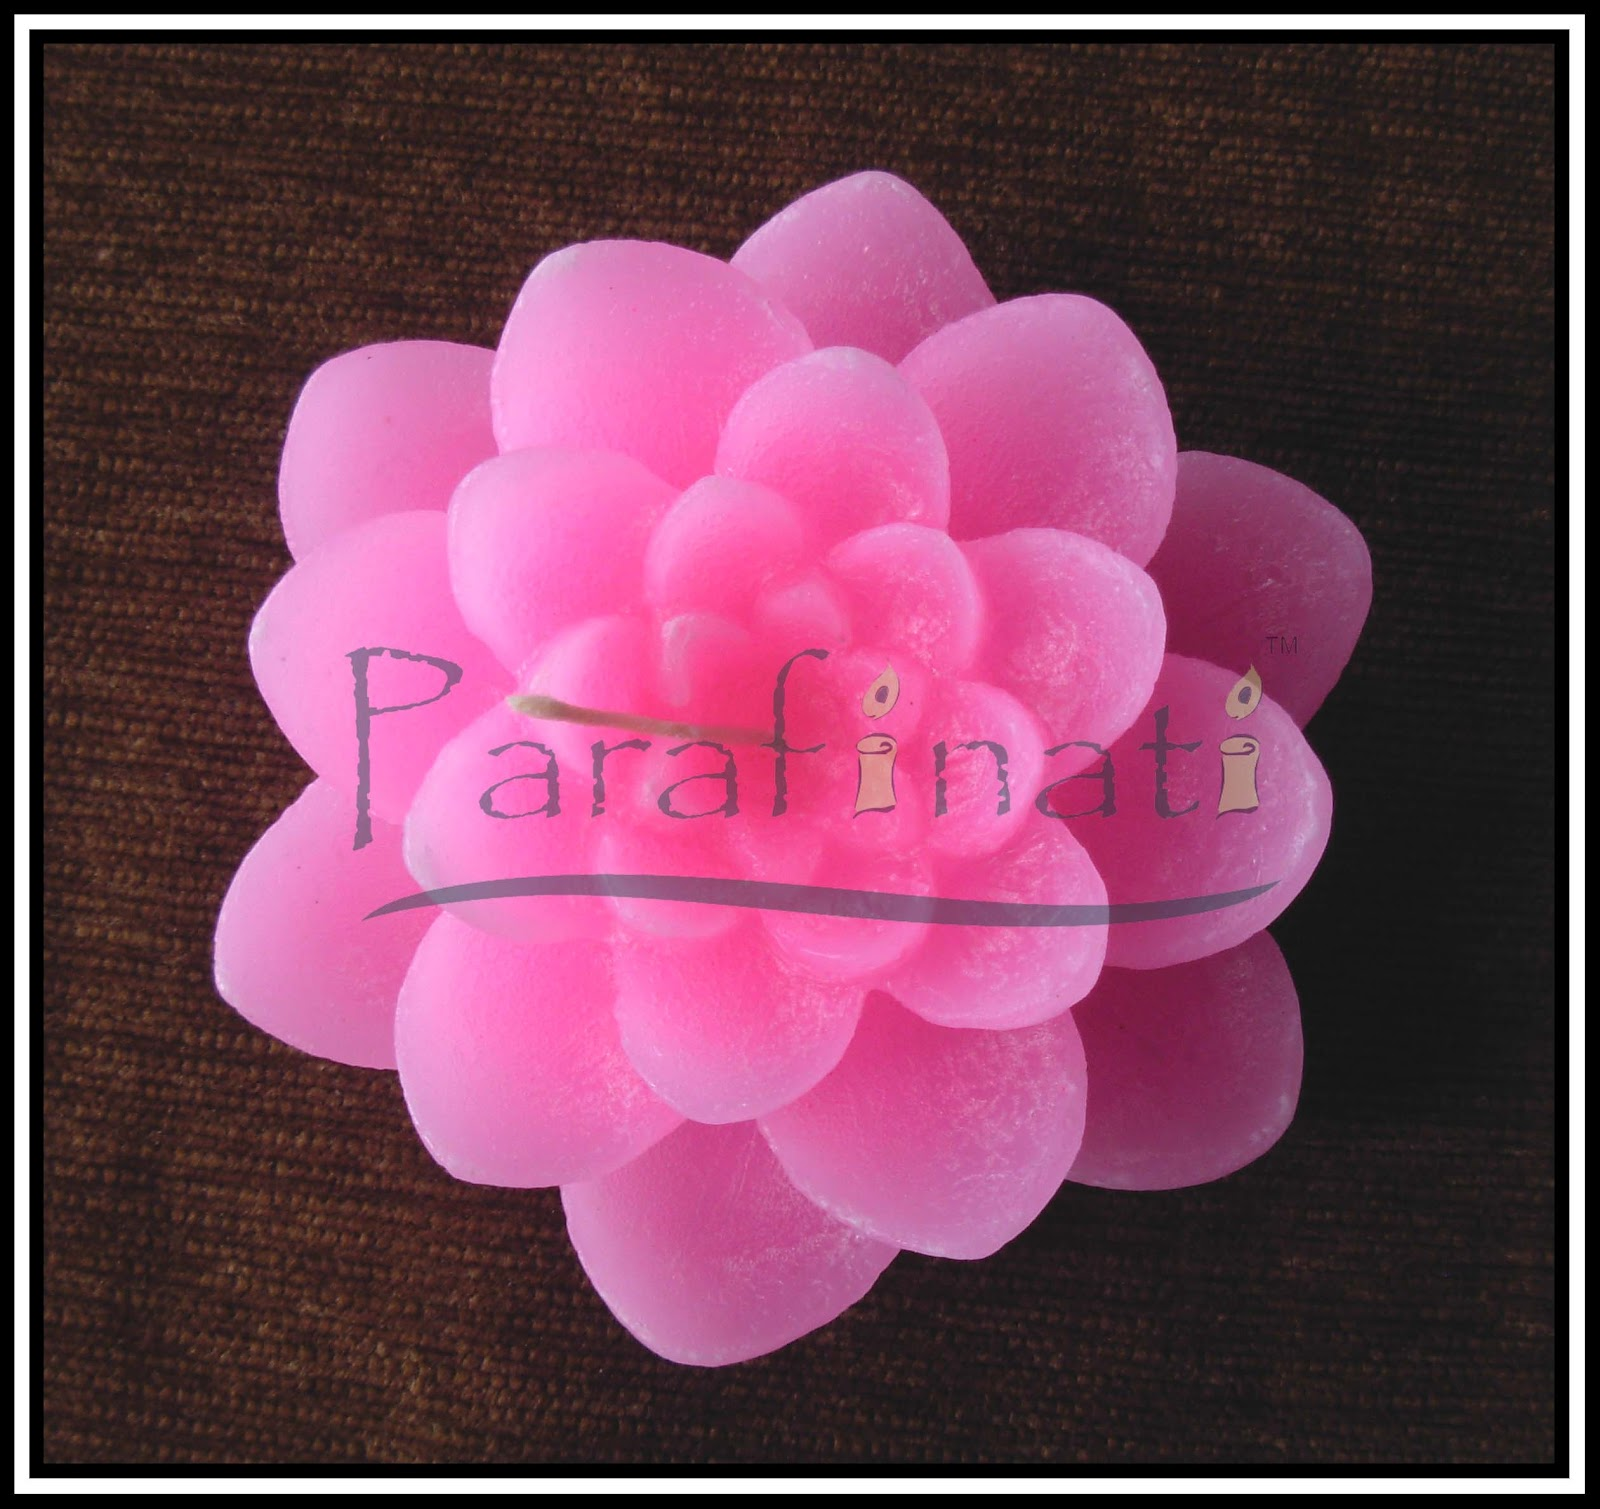 Parafinati Candles National Flower Lotus Fower Candle